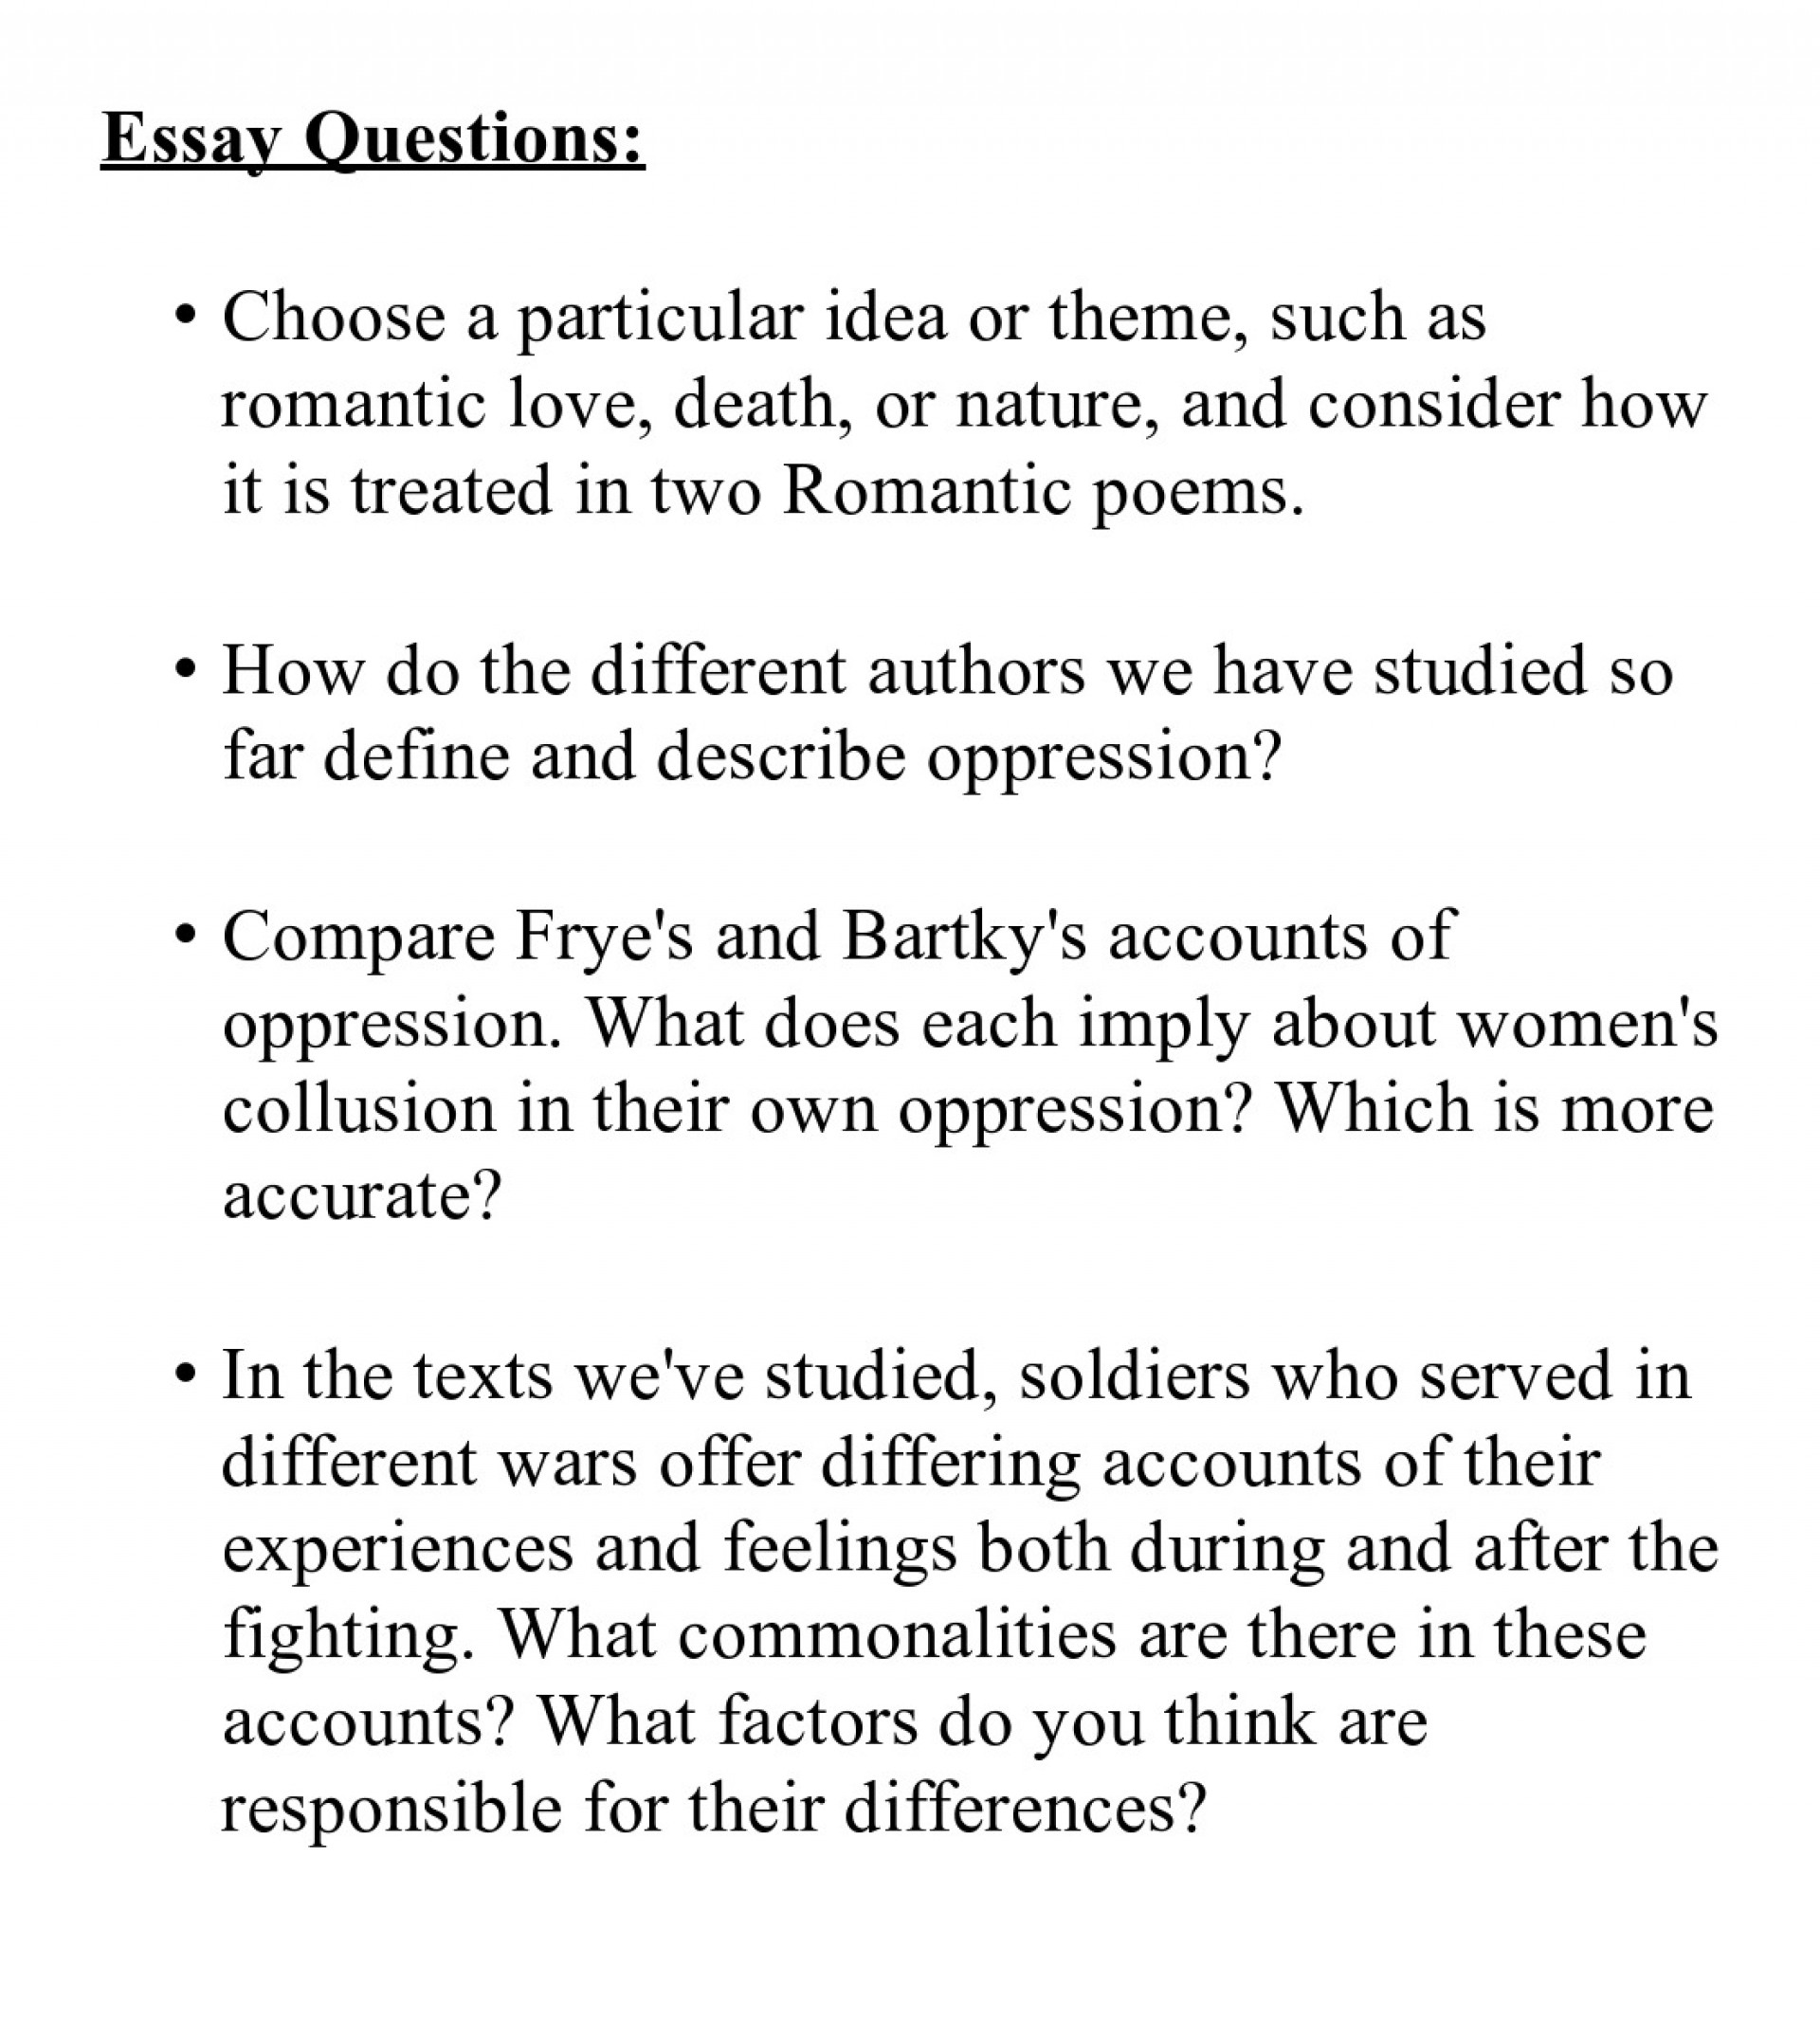 007 College Essay Topics Example Questions Top A B And C Argumentative Common To Avoid 1920